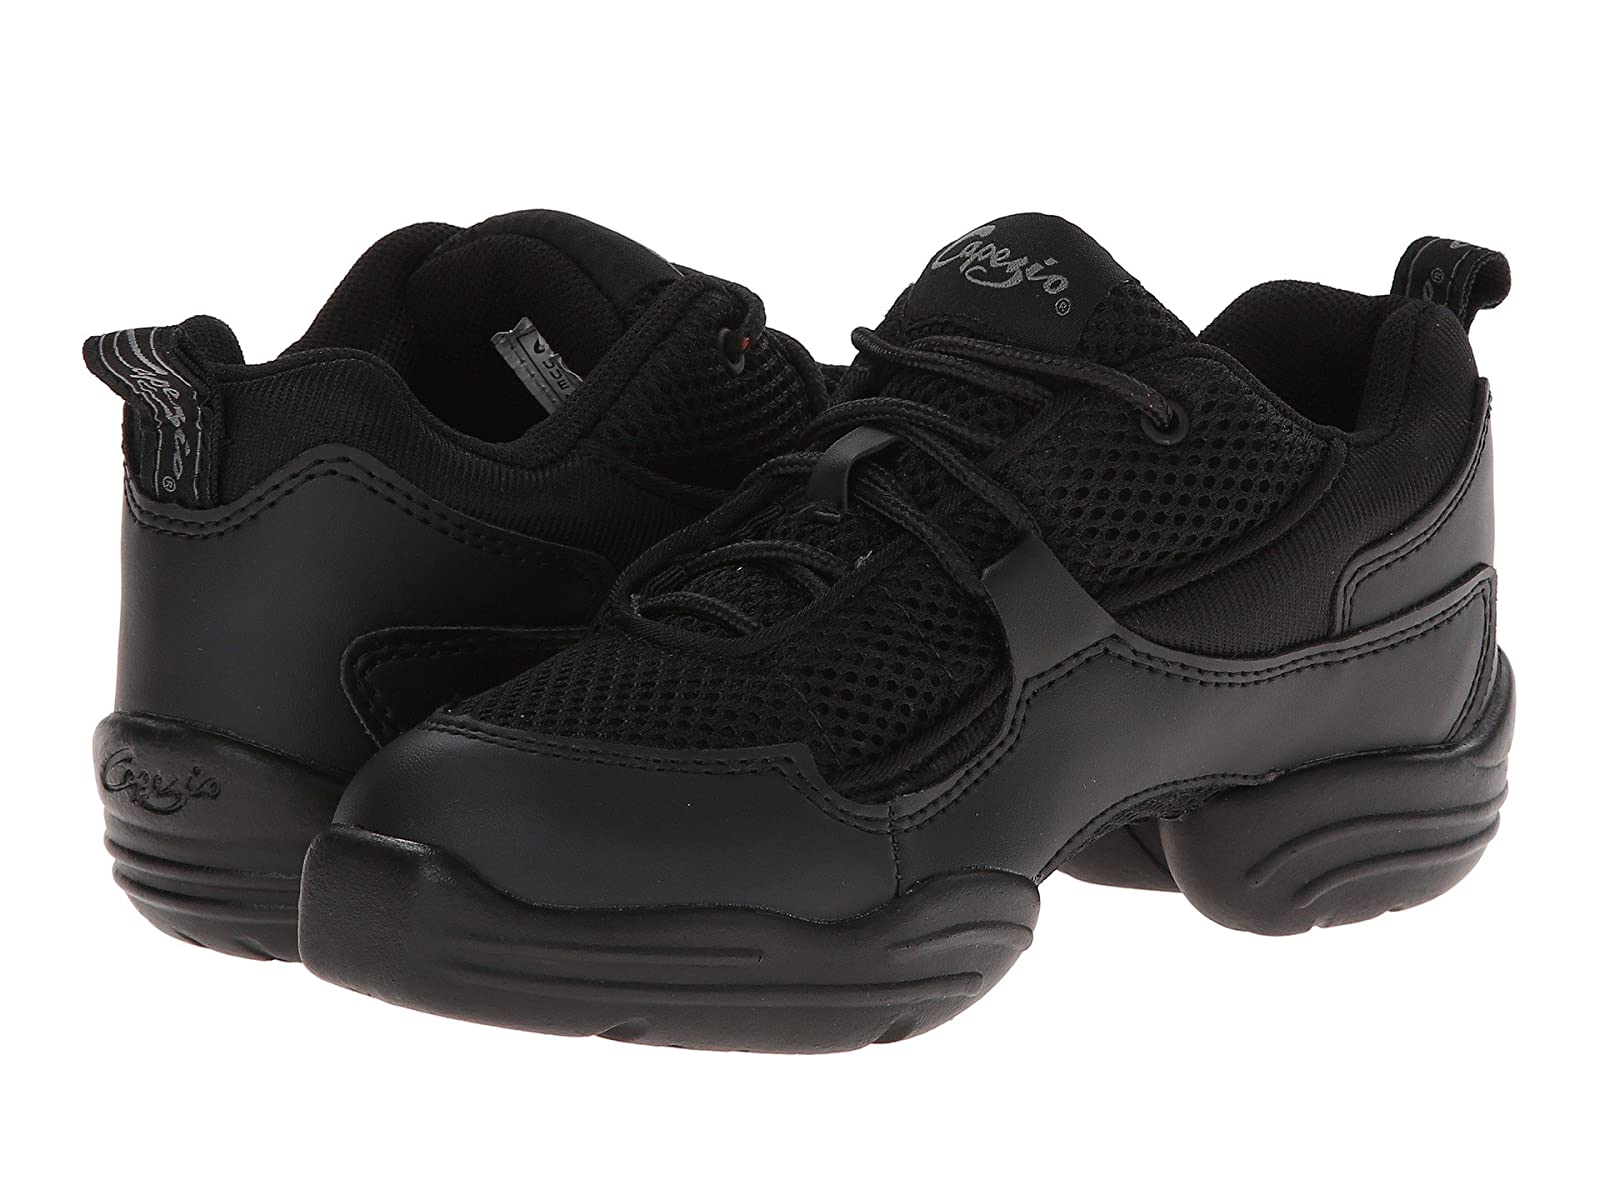 Capezio Fierce Dansneaker®Atmospheric grades have affordable shoes